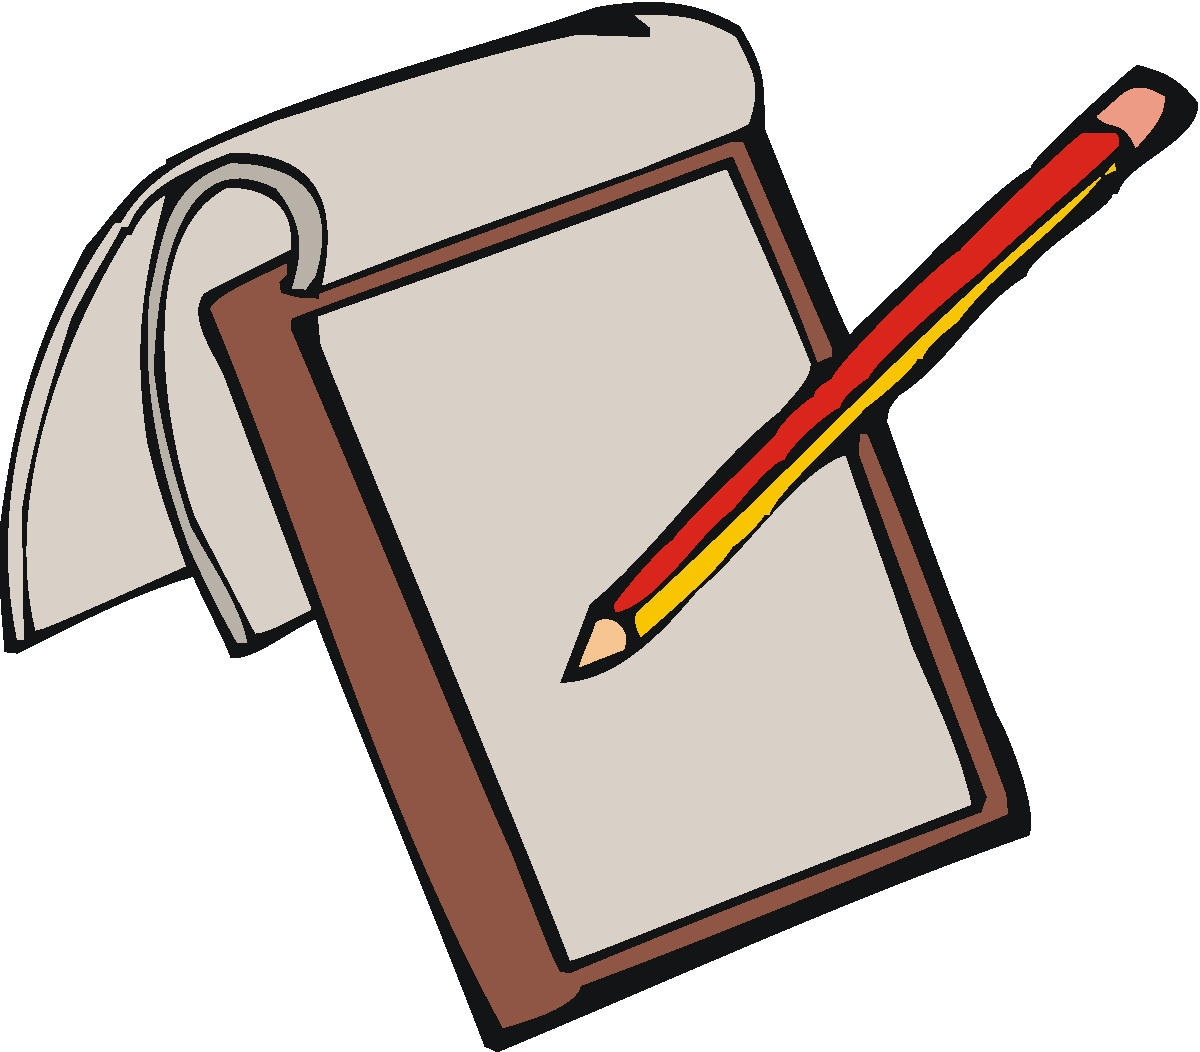 Book information. Books clipart writing transparent